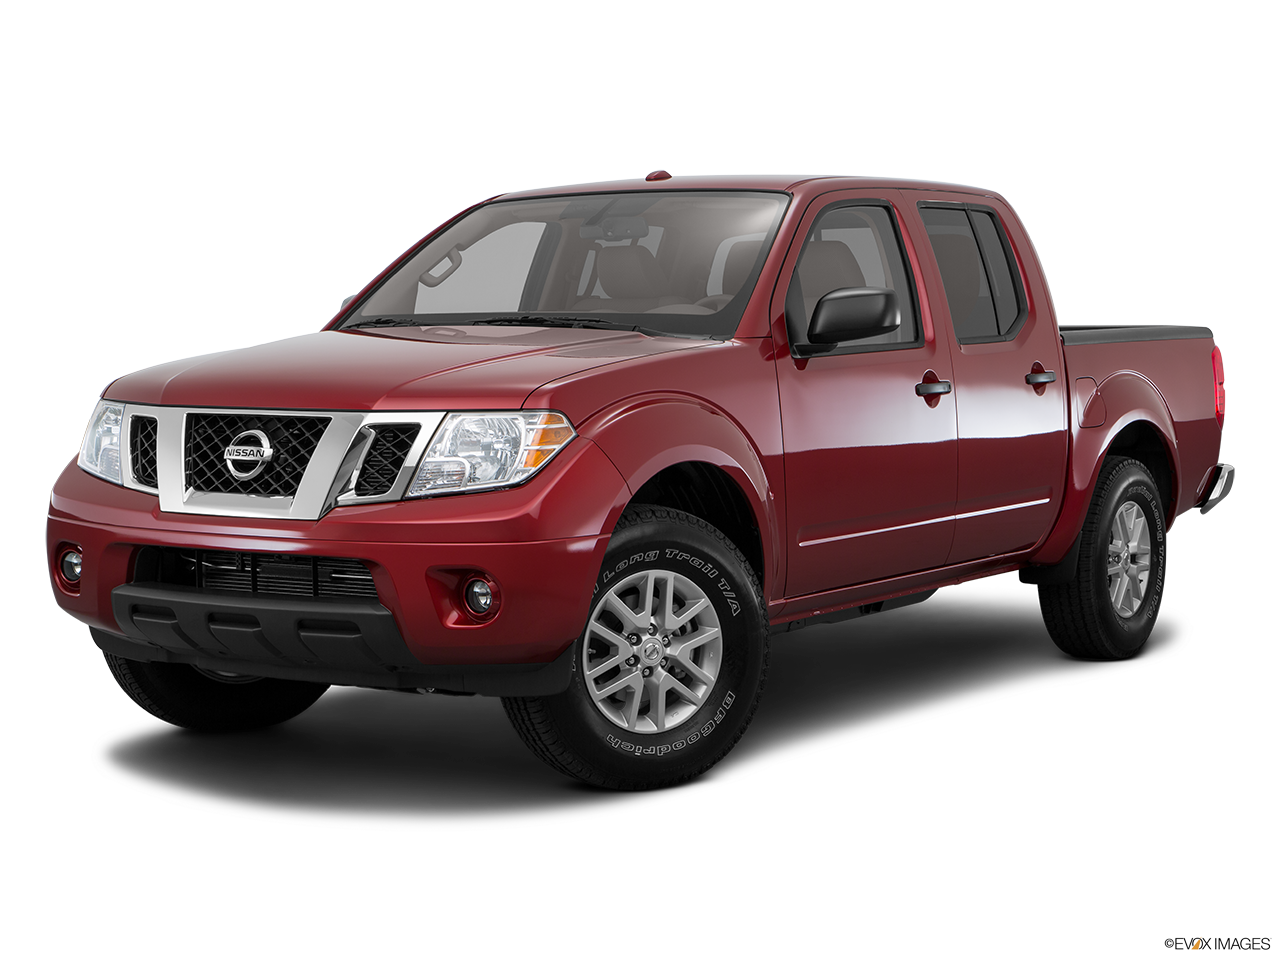 Test Drive A 2016 Nissan Frontier® at Empire Nissan in Ontario